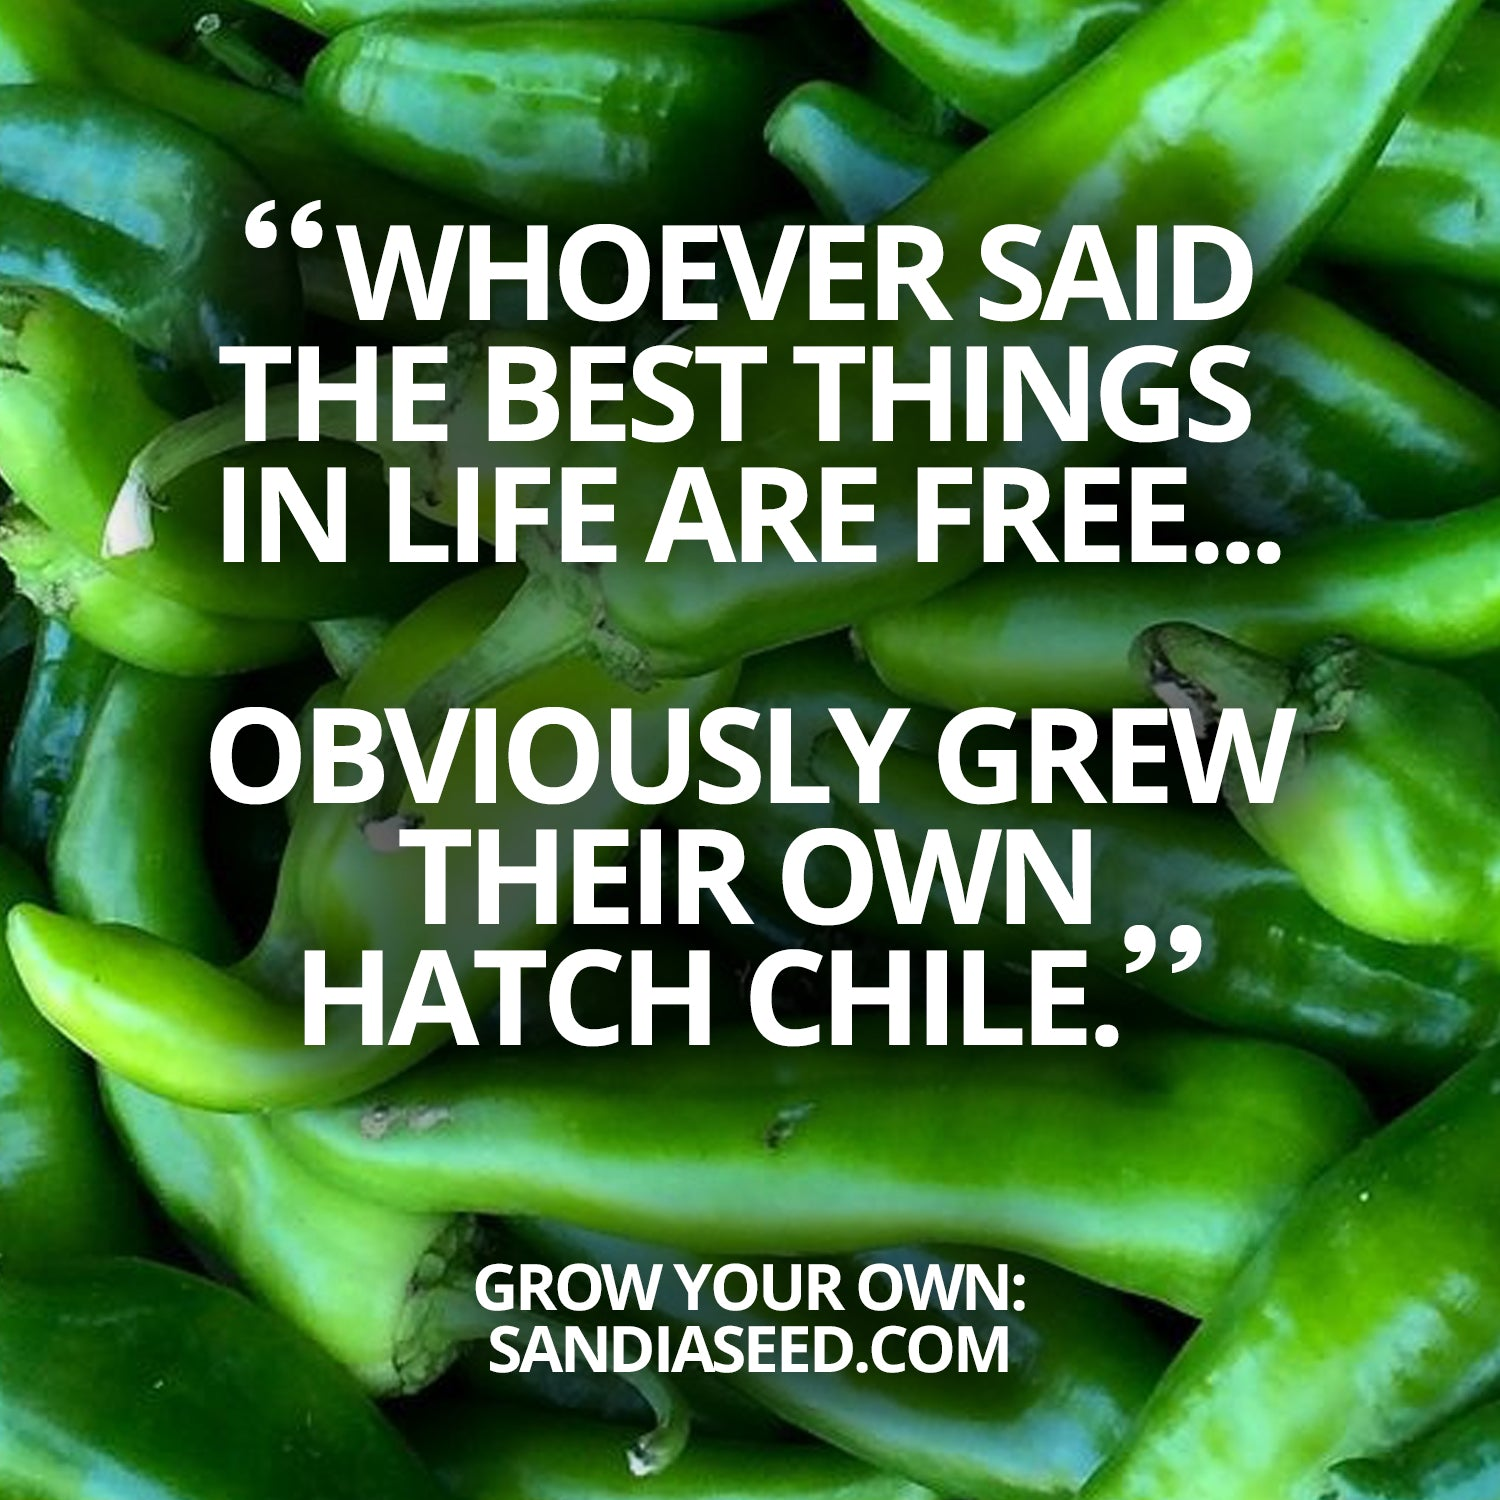 Chili Meme: Whoever Said the Best Things in Life are Free... Obviously grew their own Hatch Chile""